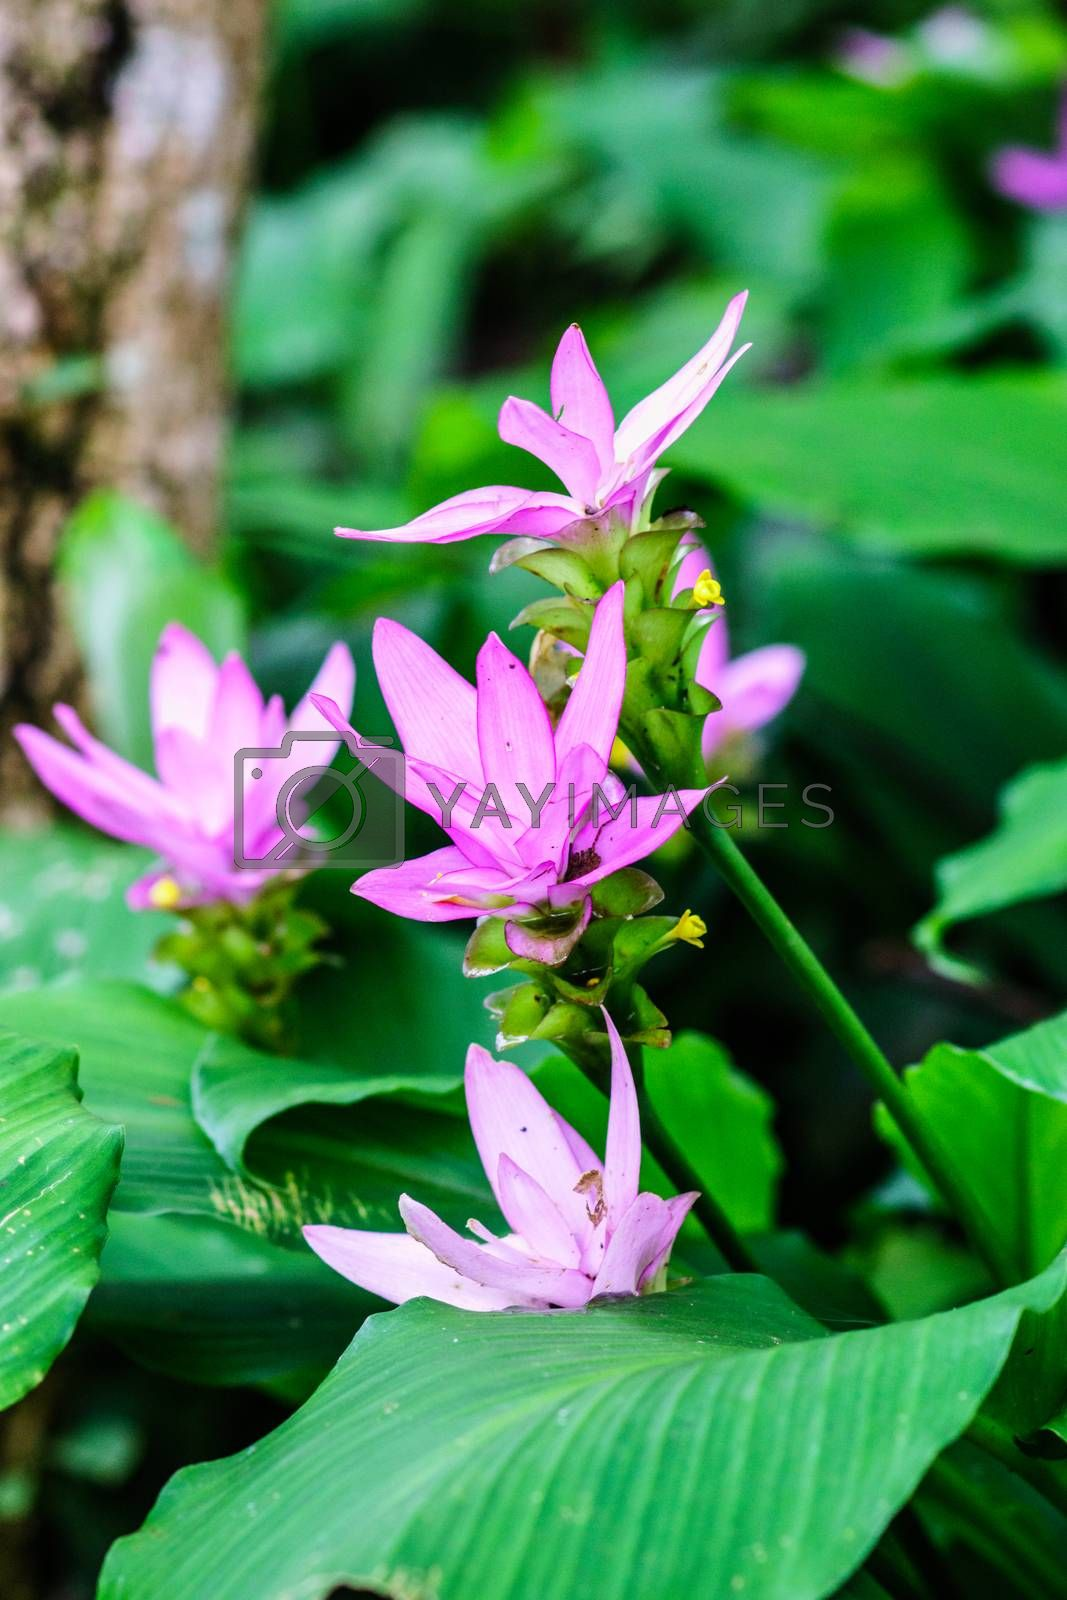 pink patumma flower in Thailand tropical forest,shallow focus